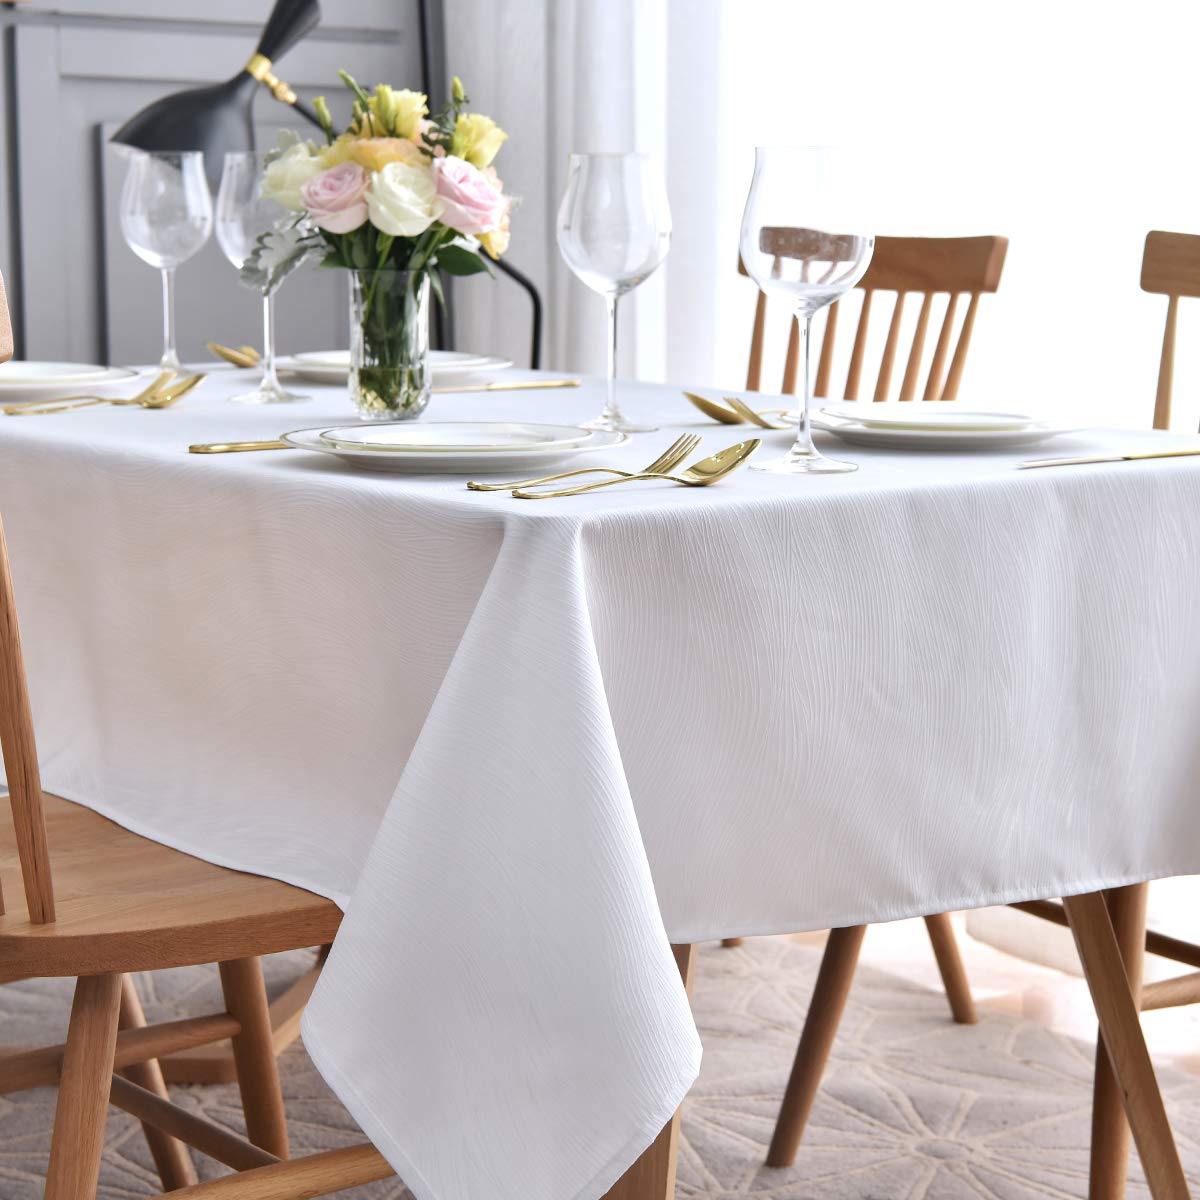 maxmill Jacquard Tablecloth Swirl Design Water Resistance Antiwrinkle Oil Proof Heavy Weight Soft Table Cloth for Buffet Banquet Parties Event Holiday Dinner Square 52 x 52 Inch White